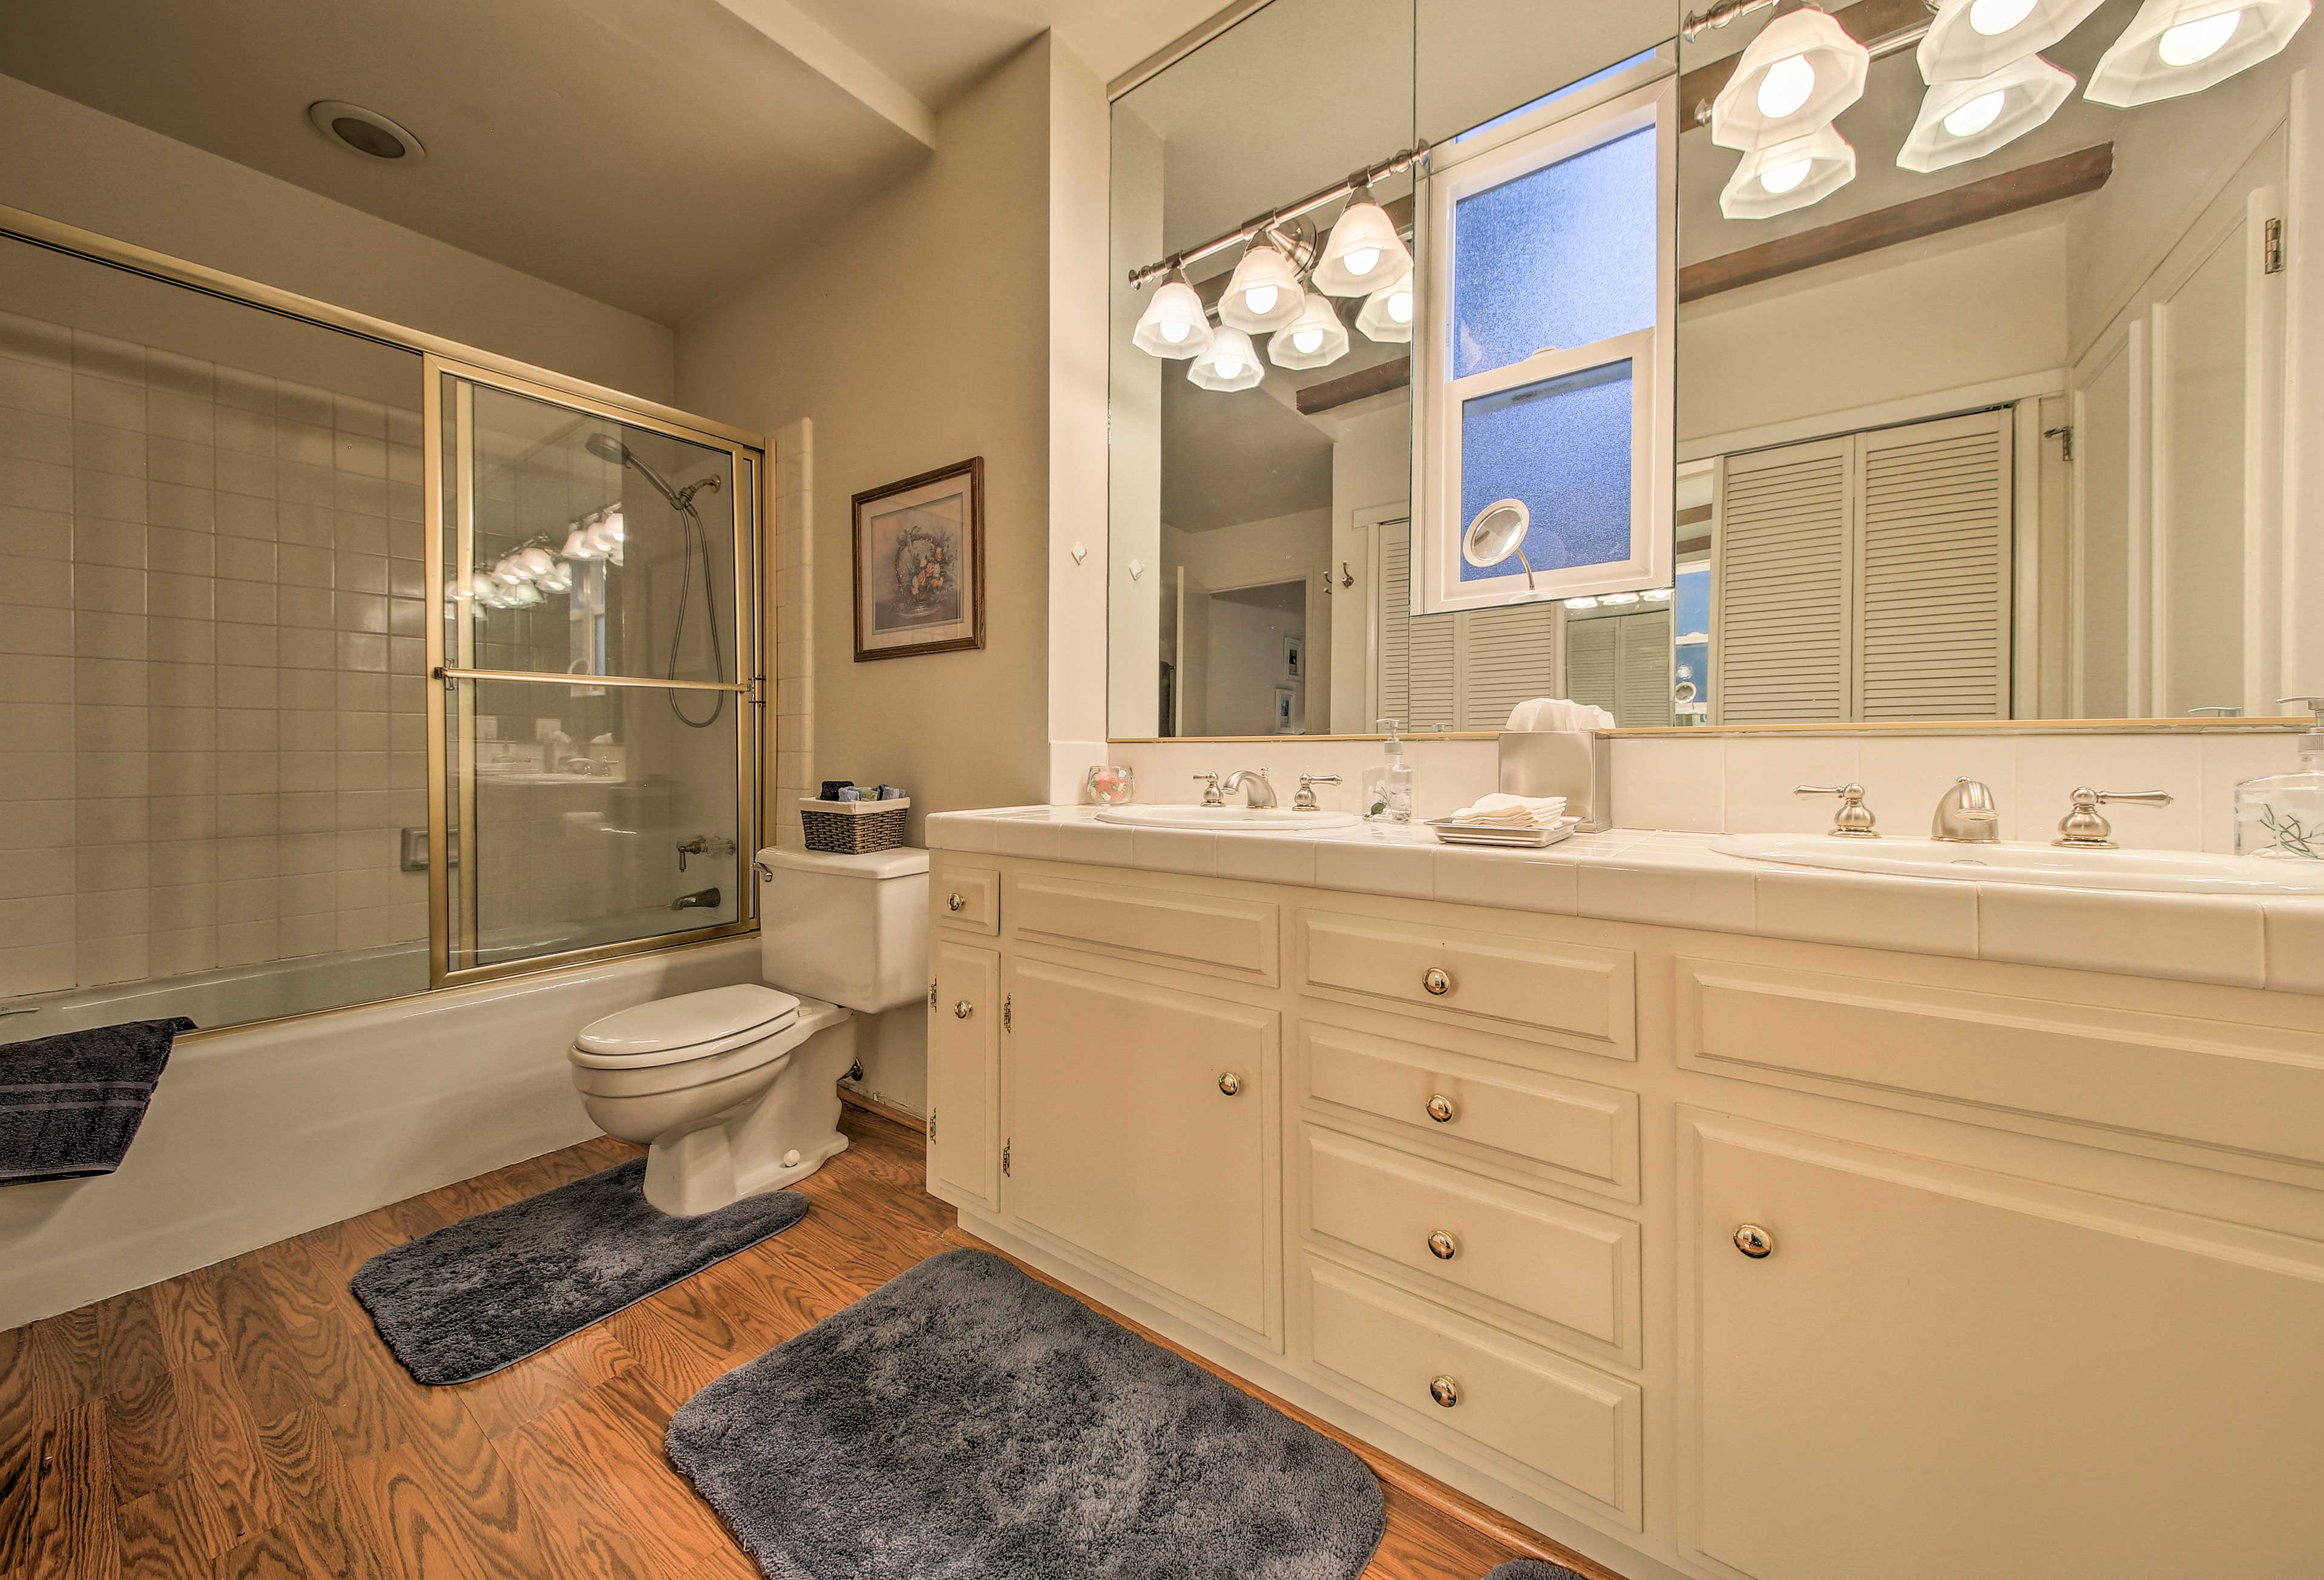 The bathroom includes a shower/tub combo and double sinks.